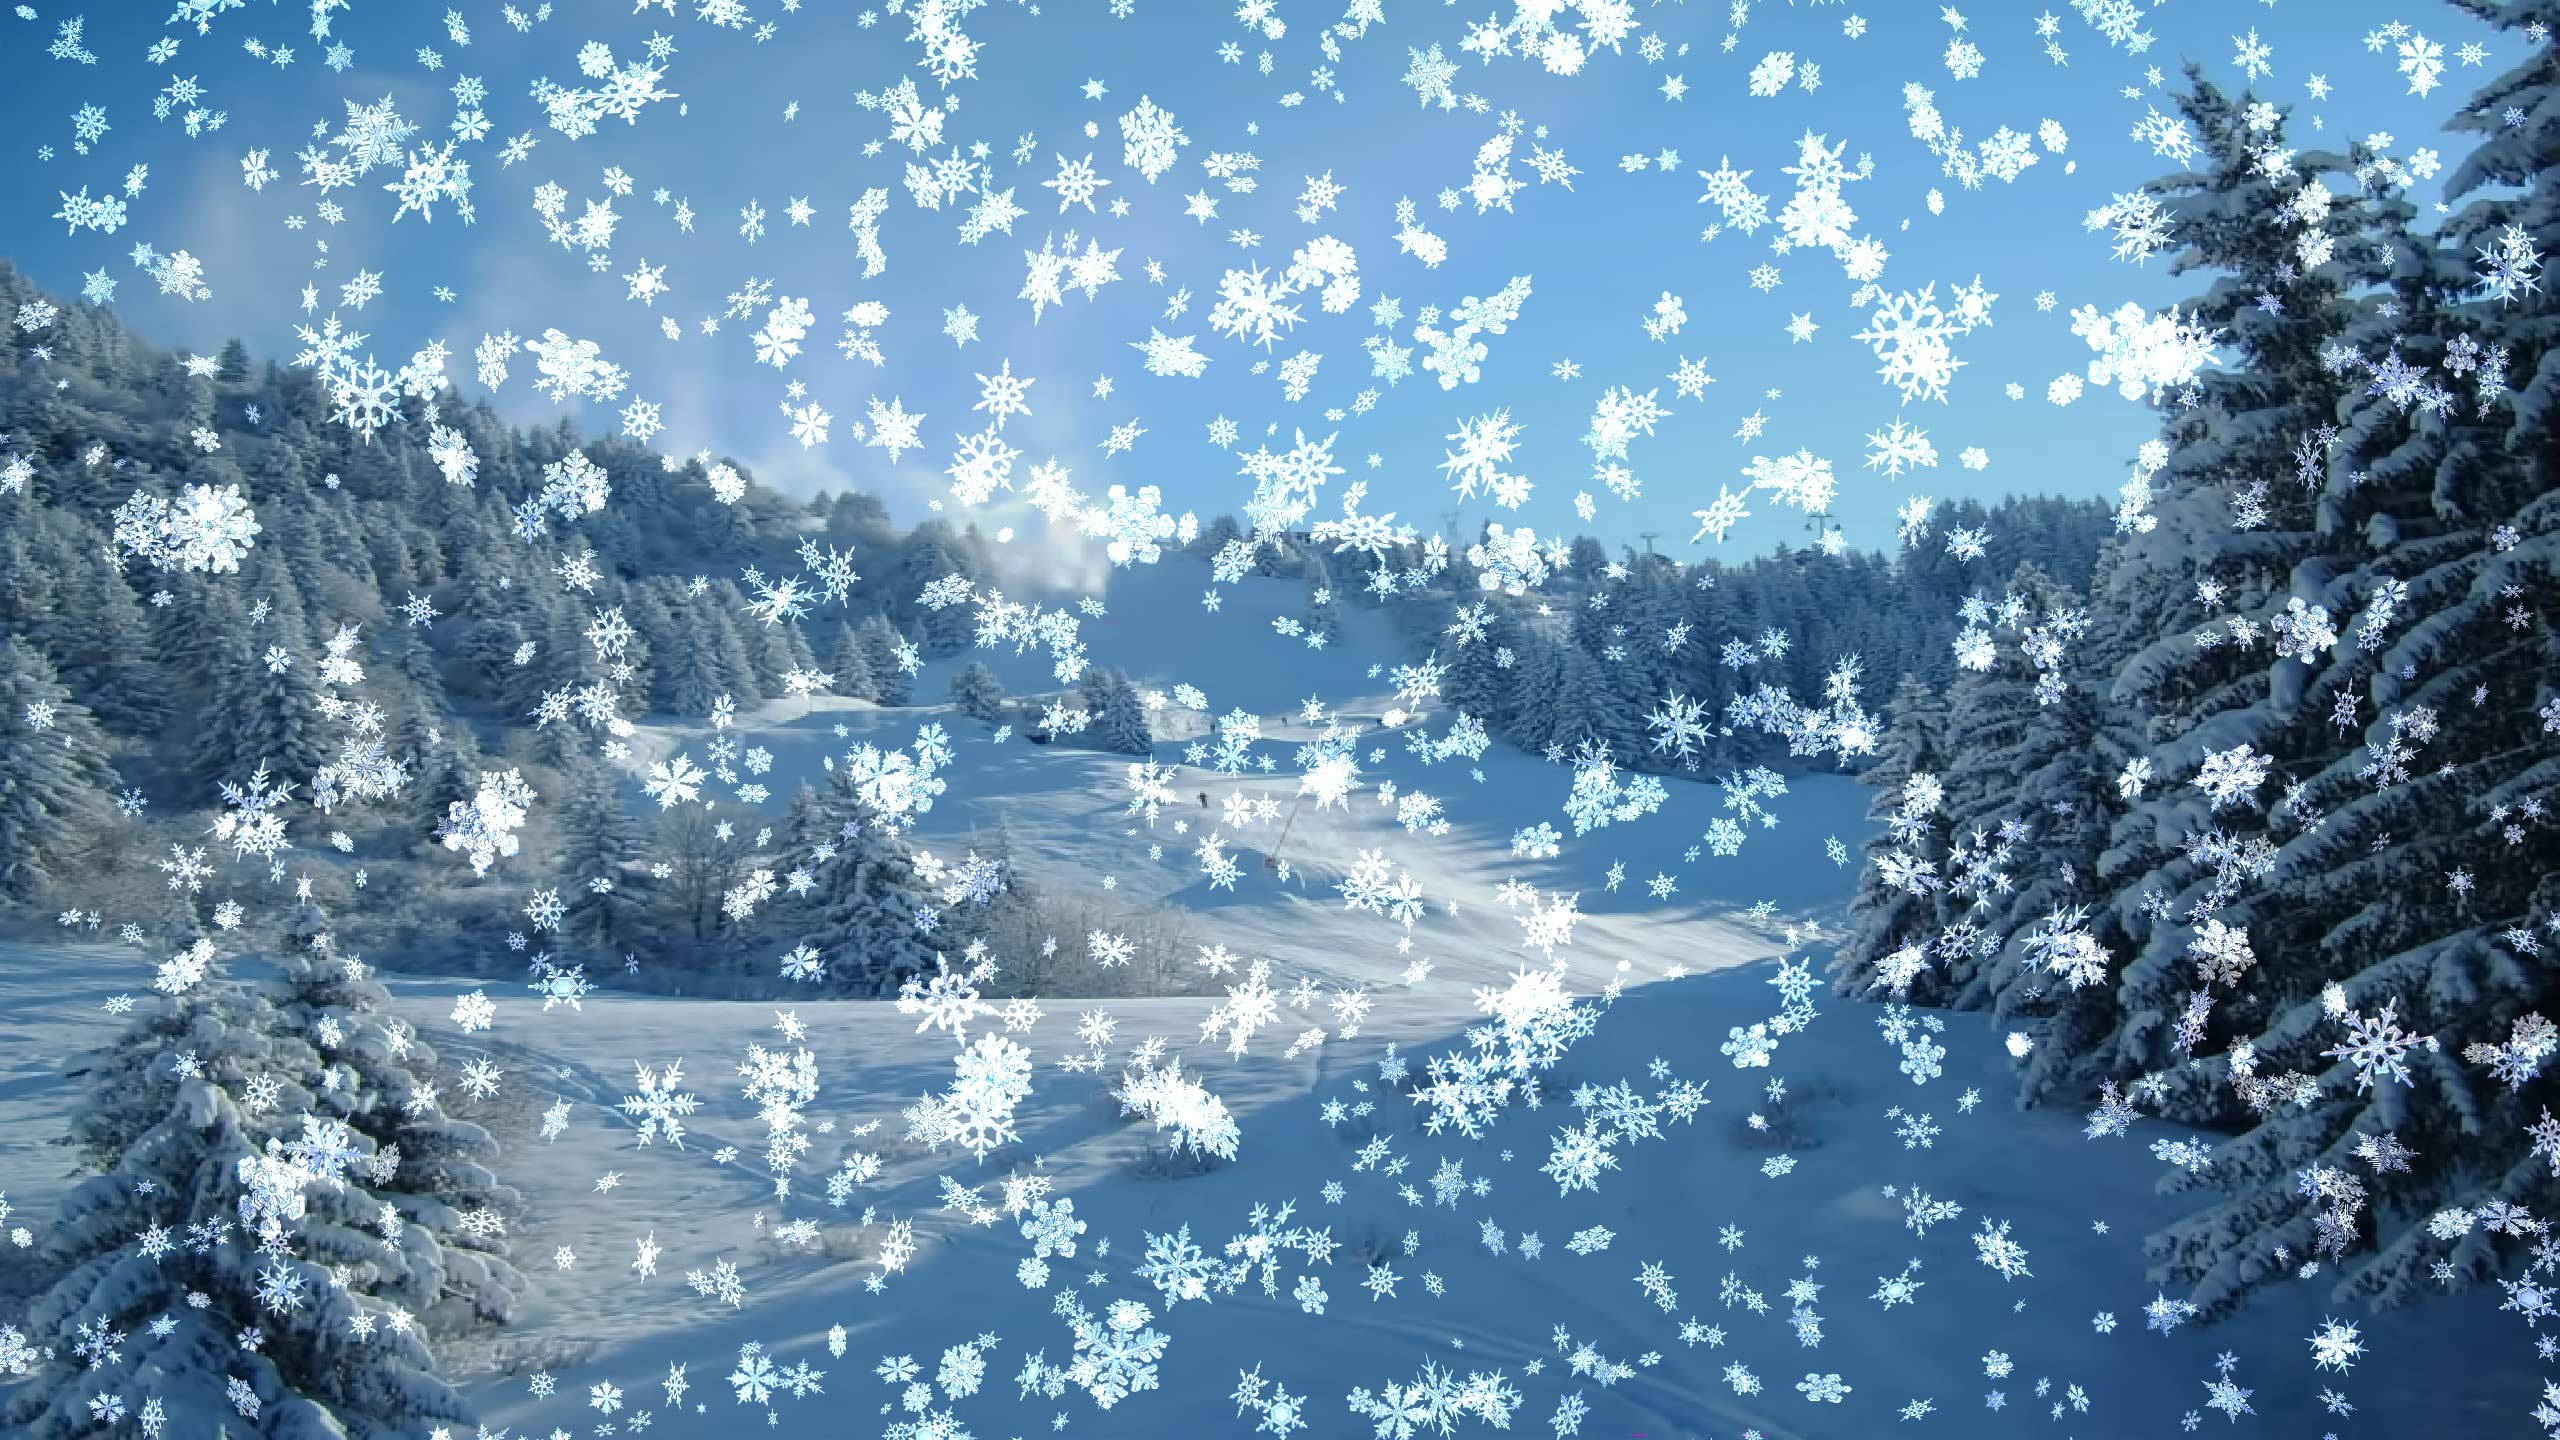 background gallery snow animated - photo #15